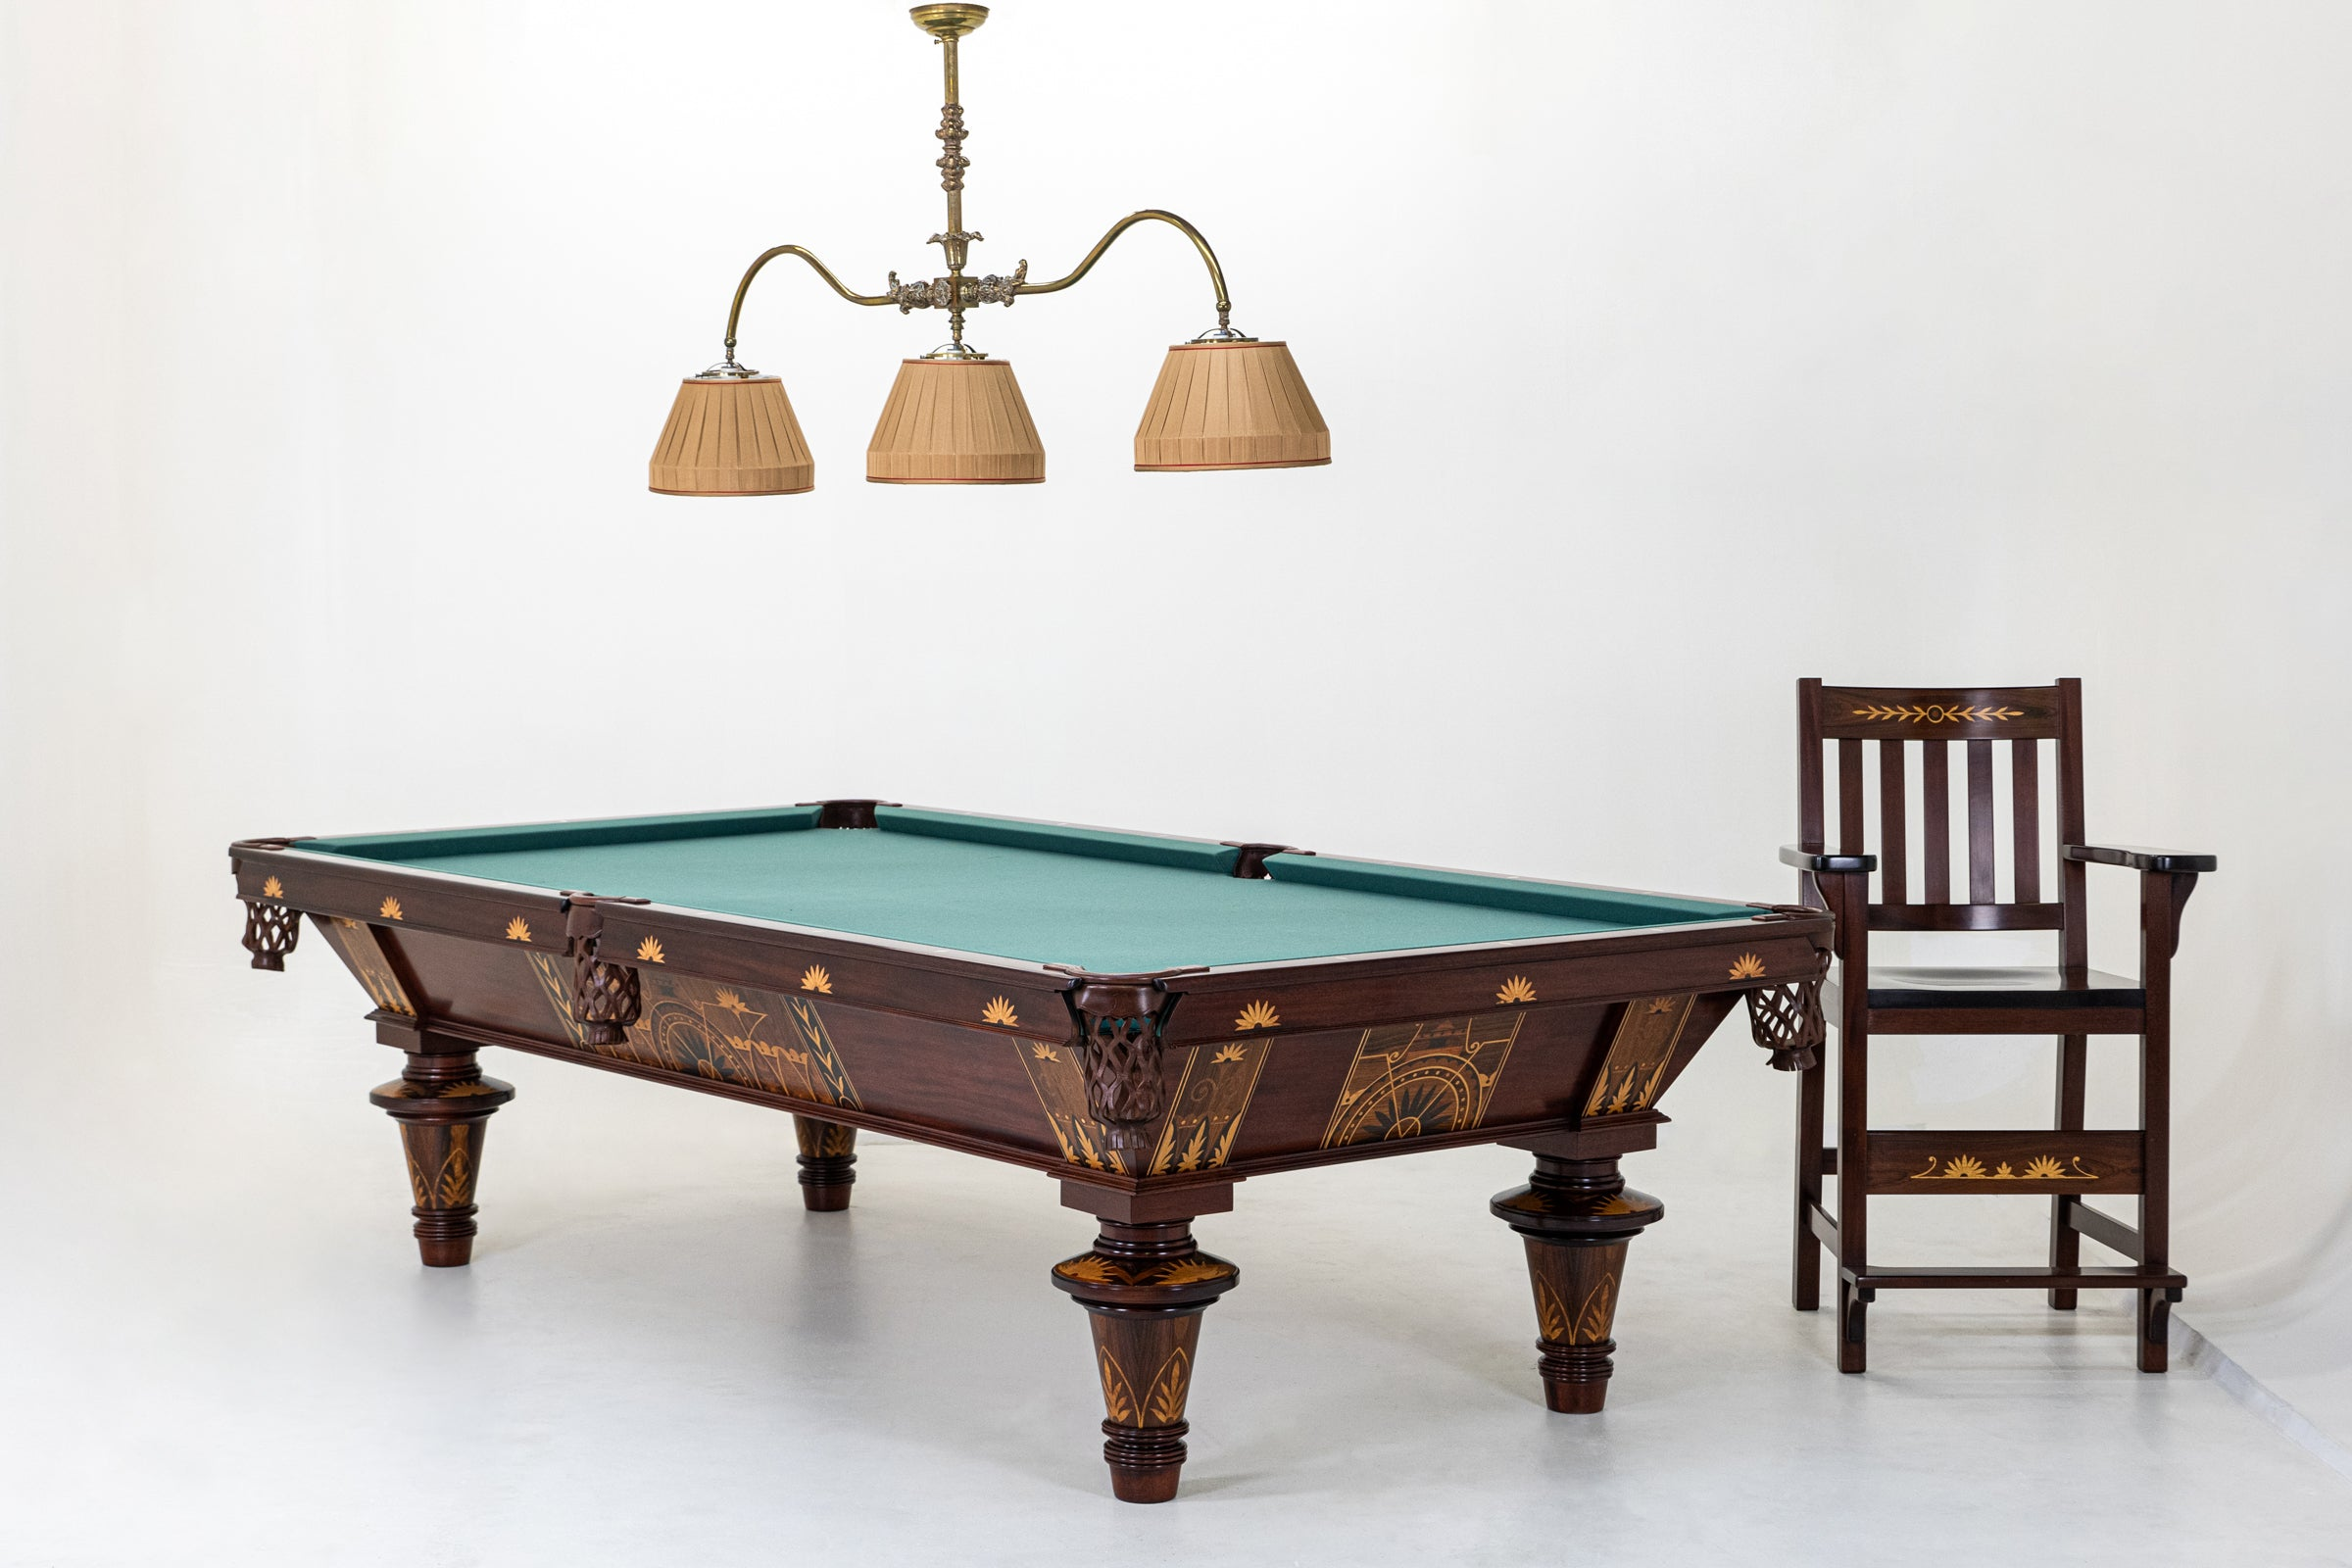 Griffith - Blatt Billiards